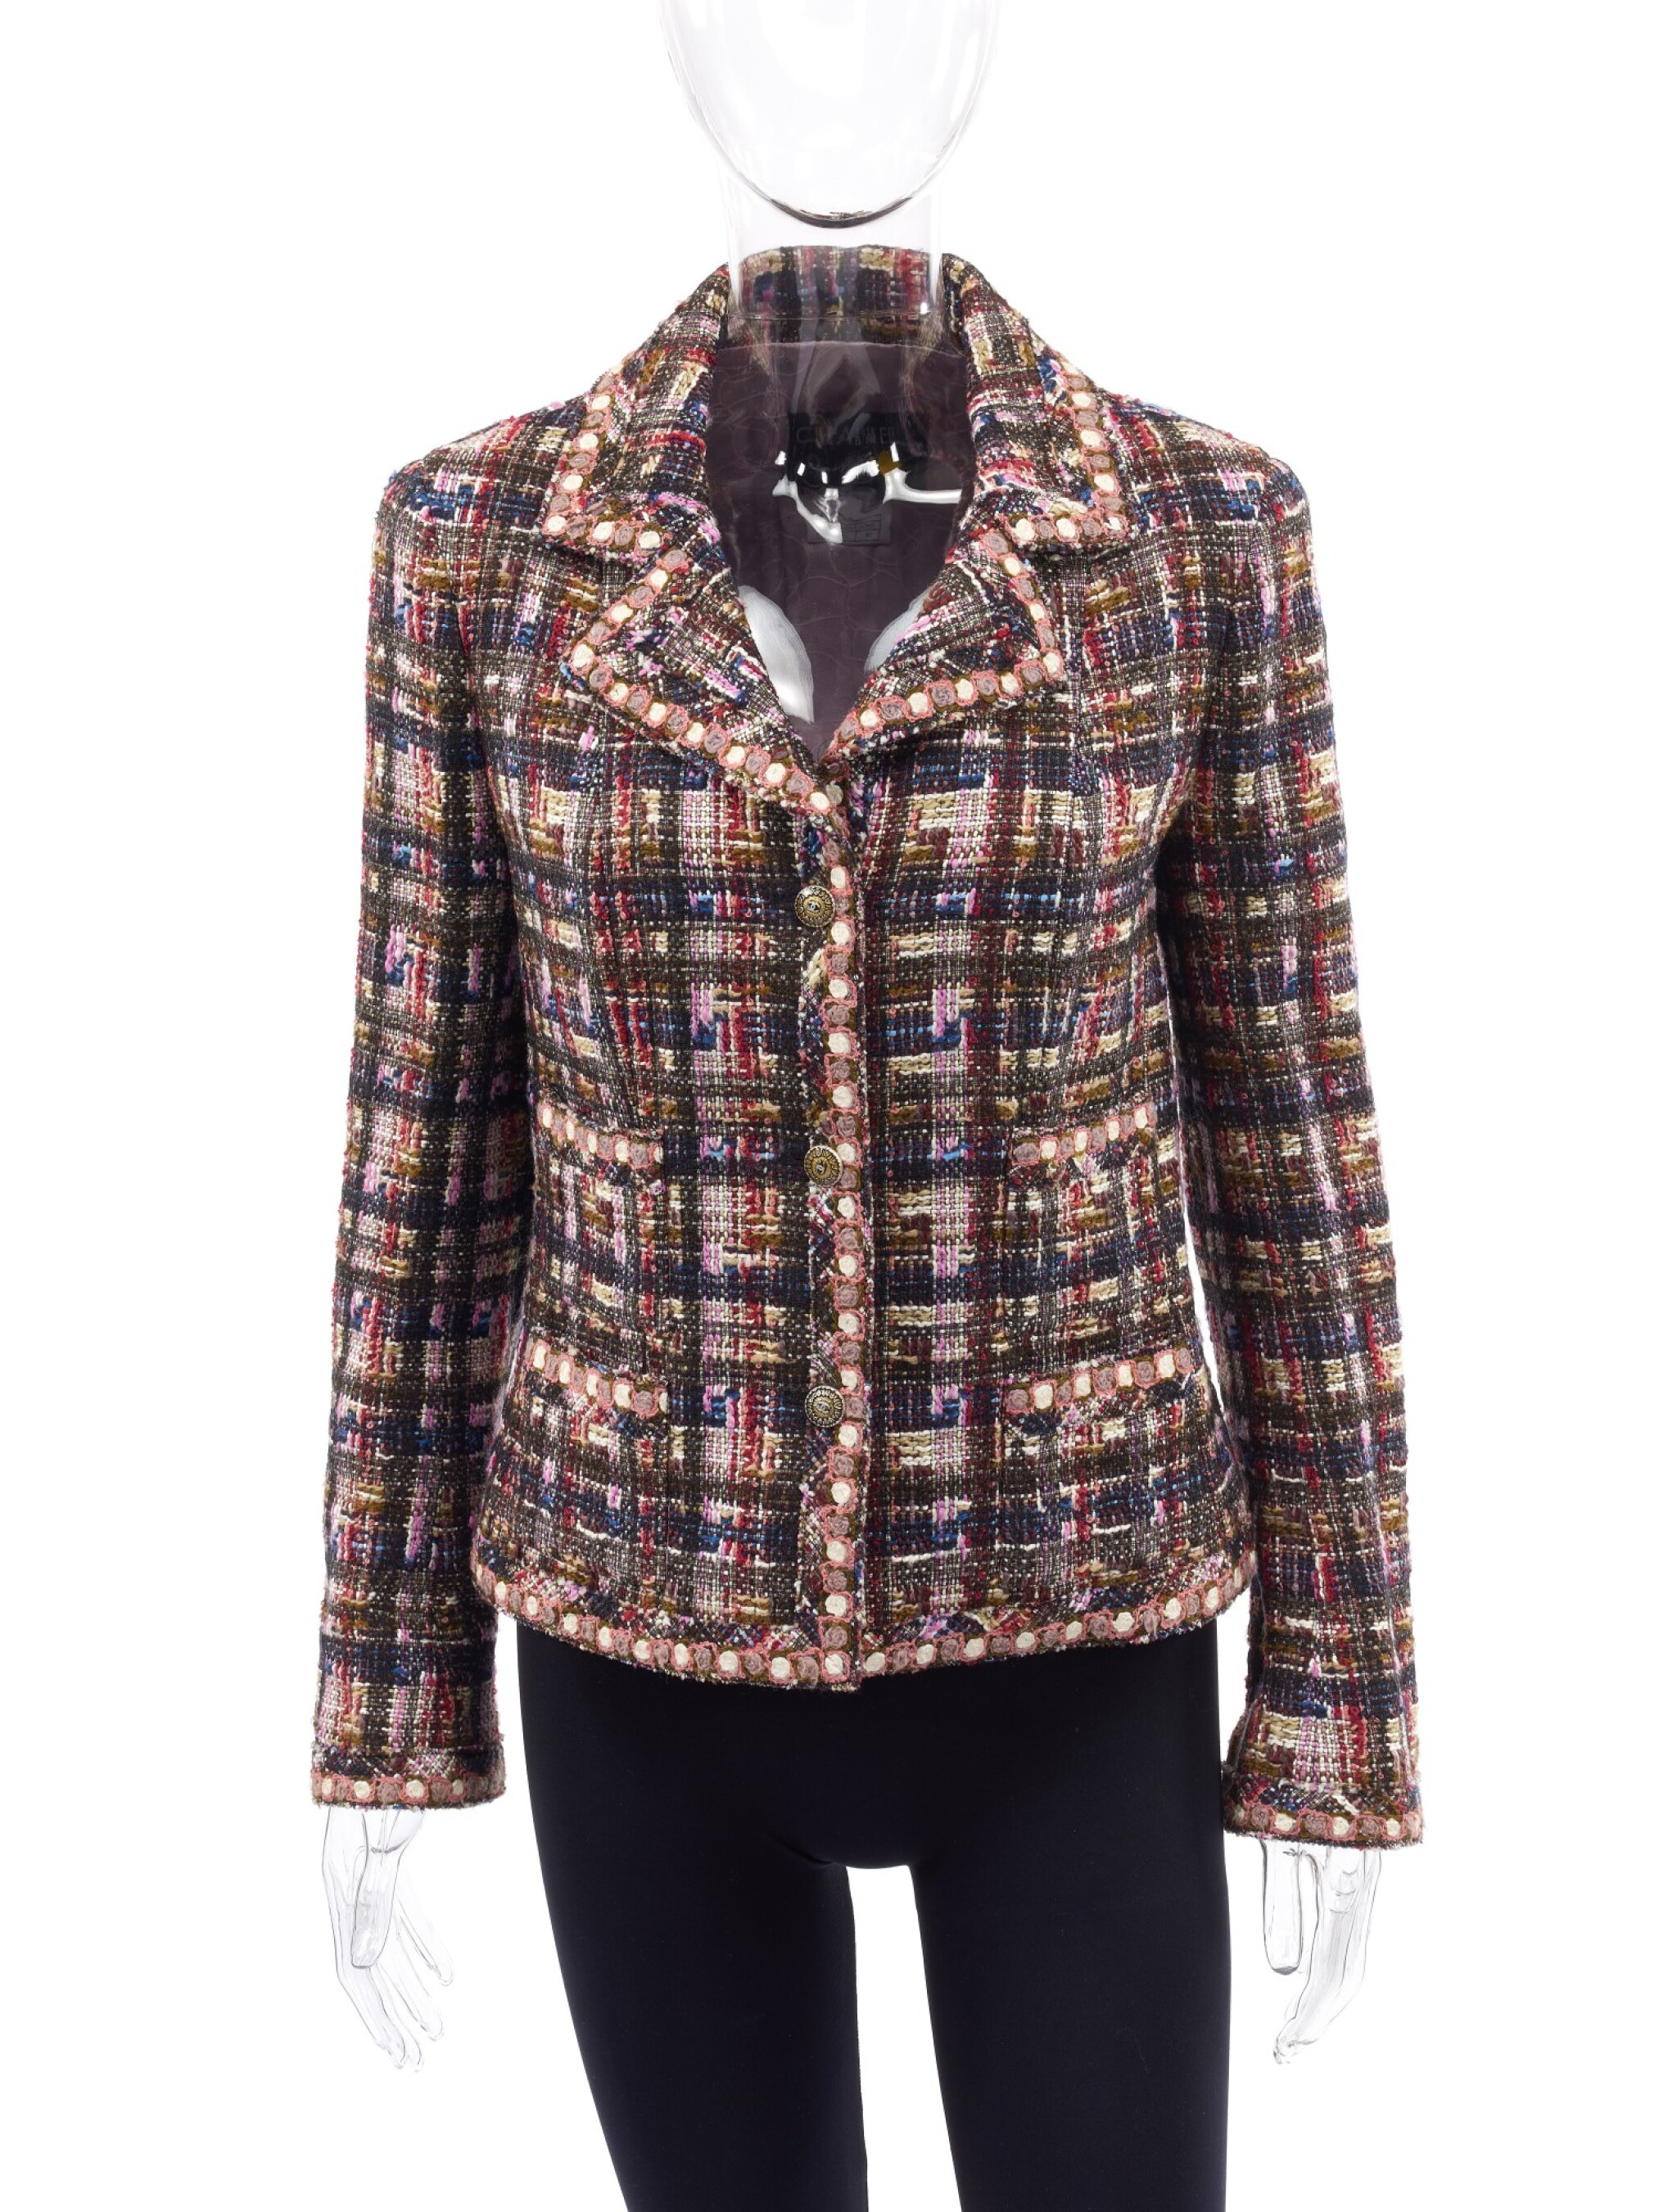 View 1 of Lot 10. MULTICOLOR WOOL-BLEND BLAZER , CHANEL.